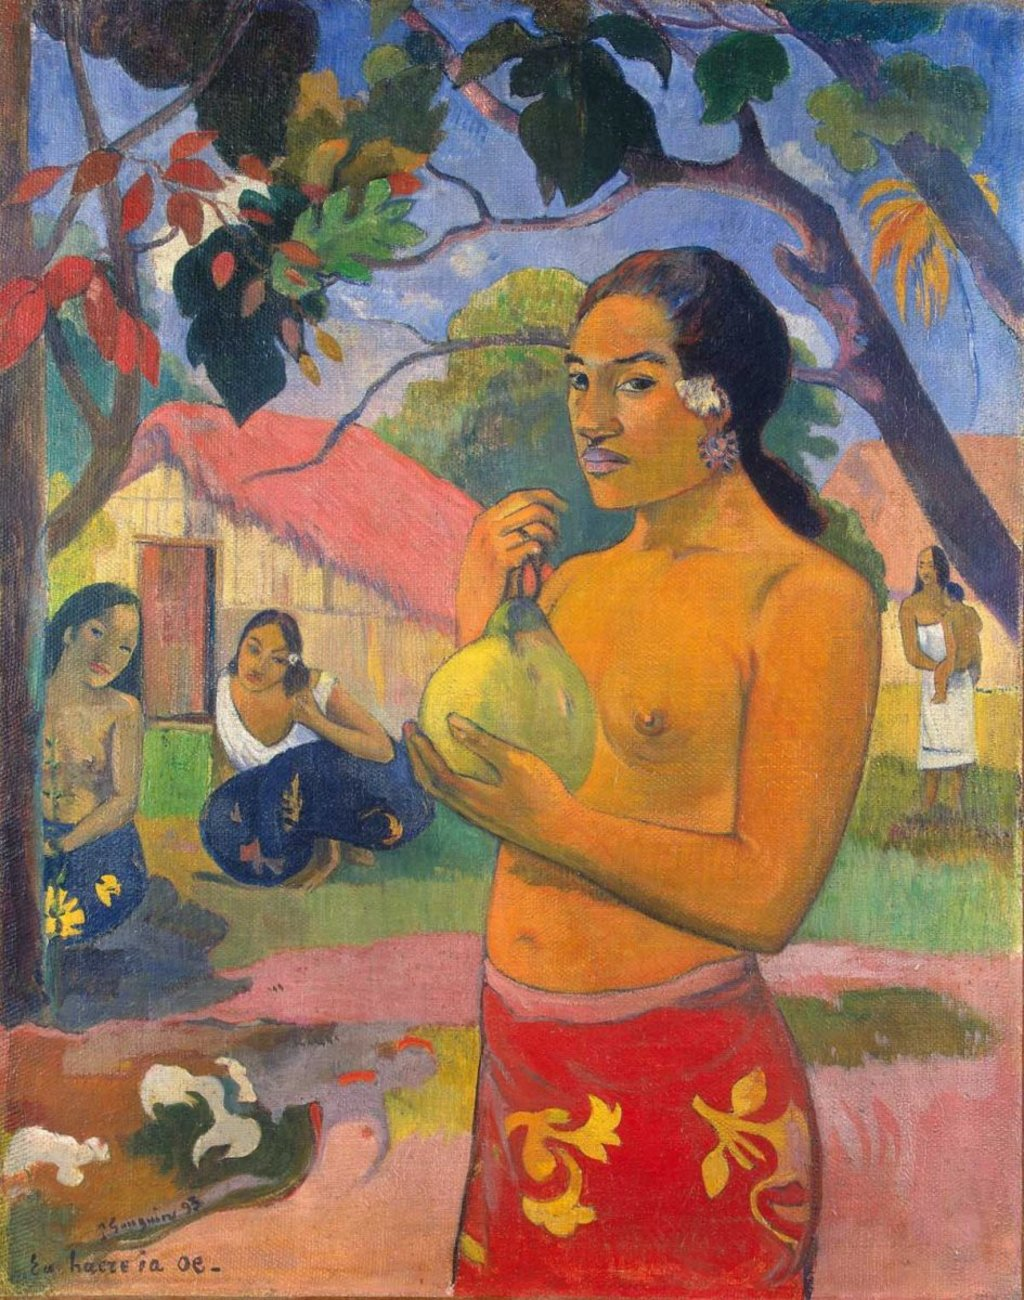 By Paul Gauguin - 1. The Yorck Project: 10.000 Meisterwerke der Malerei. DVD-ROM, 2002. ISBN 3936122202. Distributed by DIRECTMEDIA Publishing GmbH.2./4. Arthermitage3. Hermitage Torrent5. The Hermitage, St. Petersburg, Public Domain, https://commons.wikimedia.org/w/index.php?curid=151410